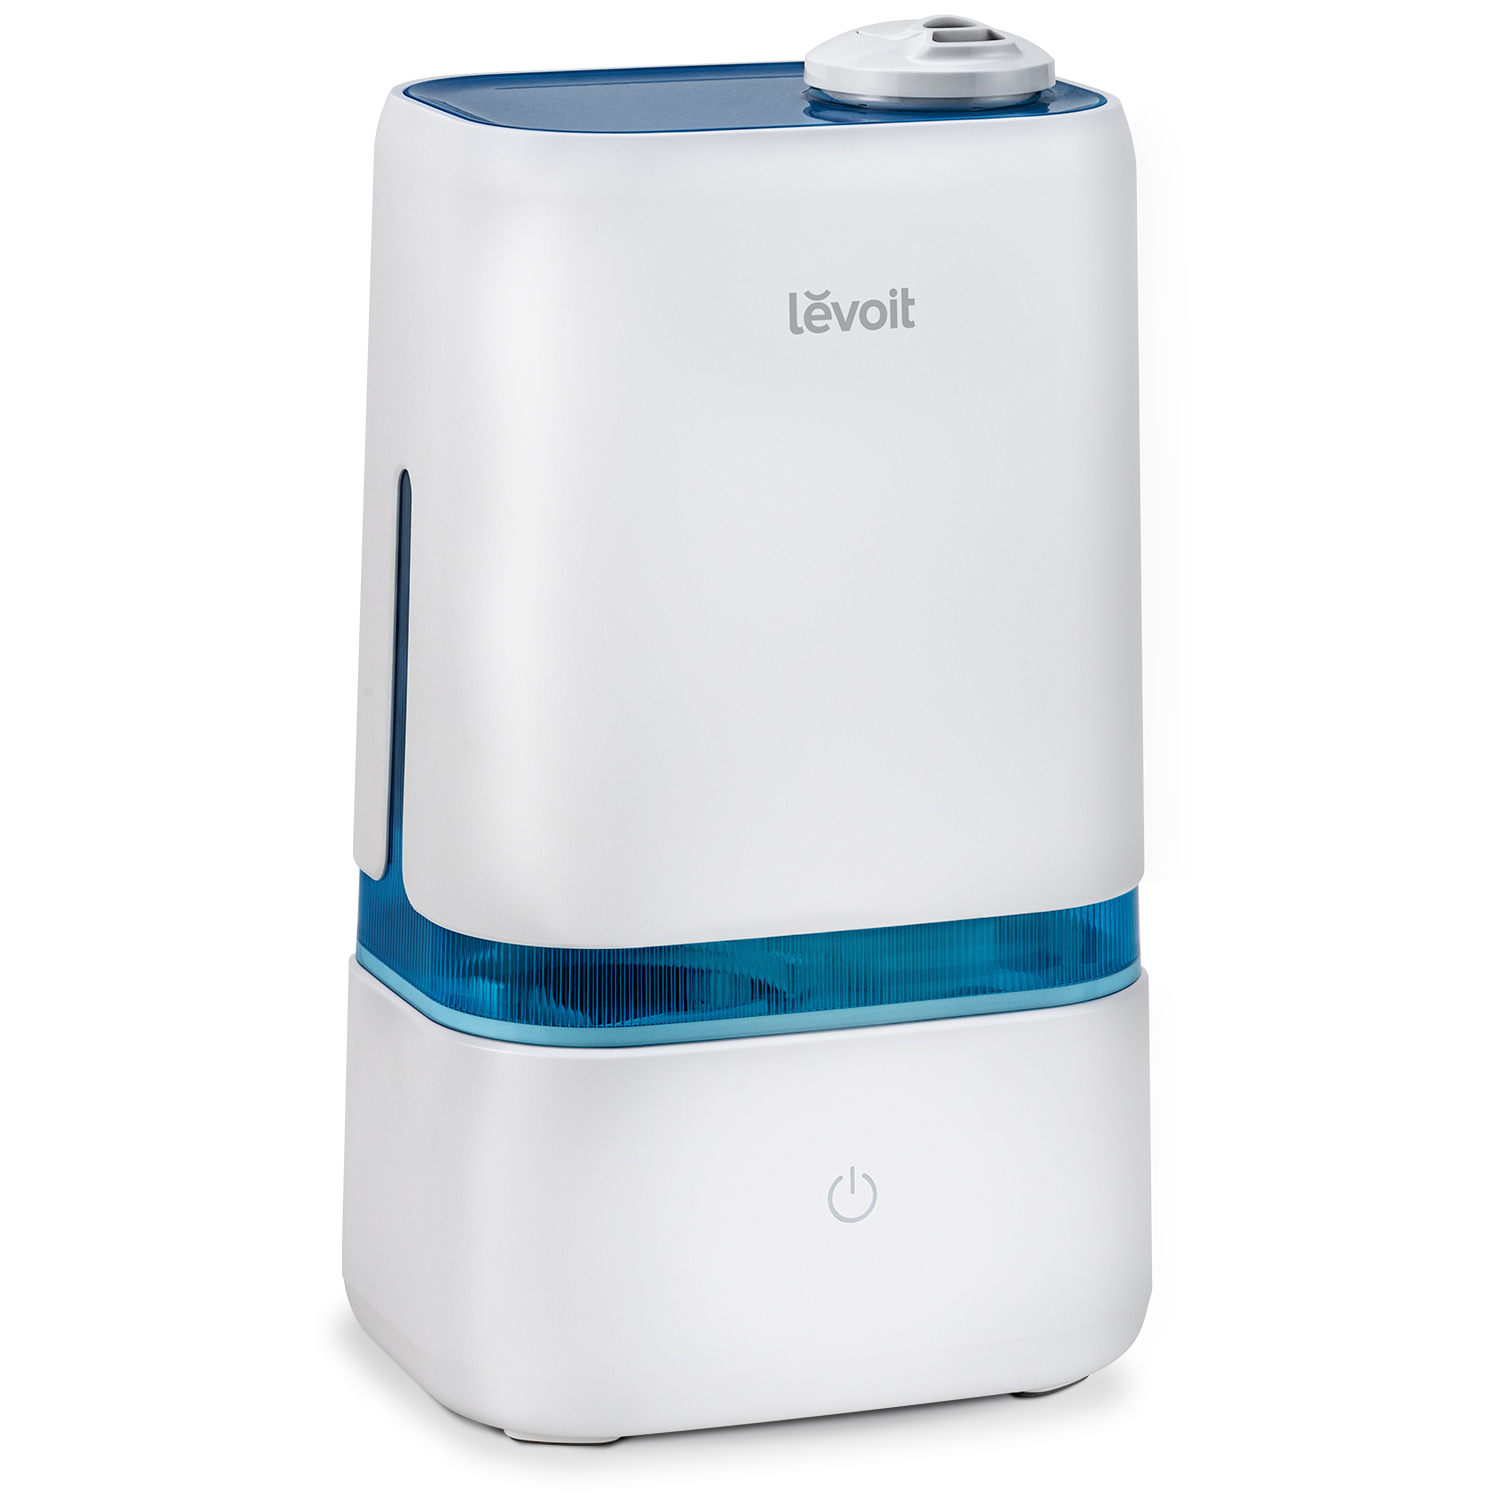 Levoit All Products Levoit Classic 200 Ultrasonic Cool Mist Humidifier